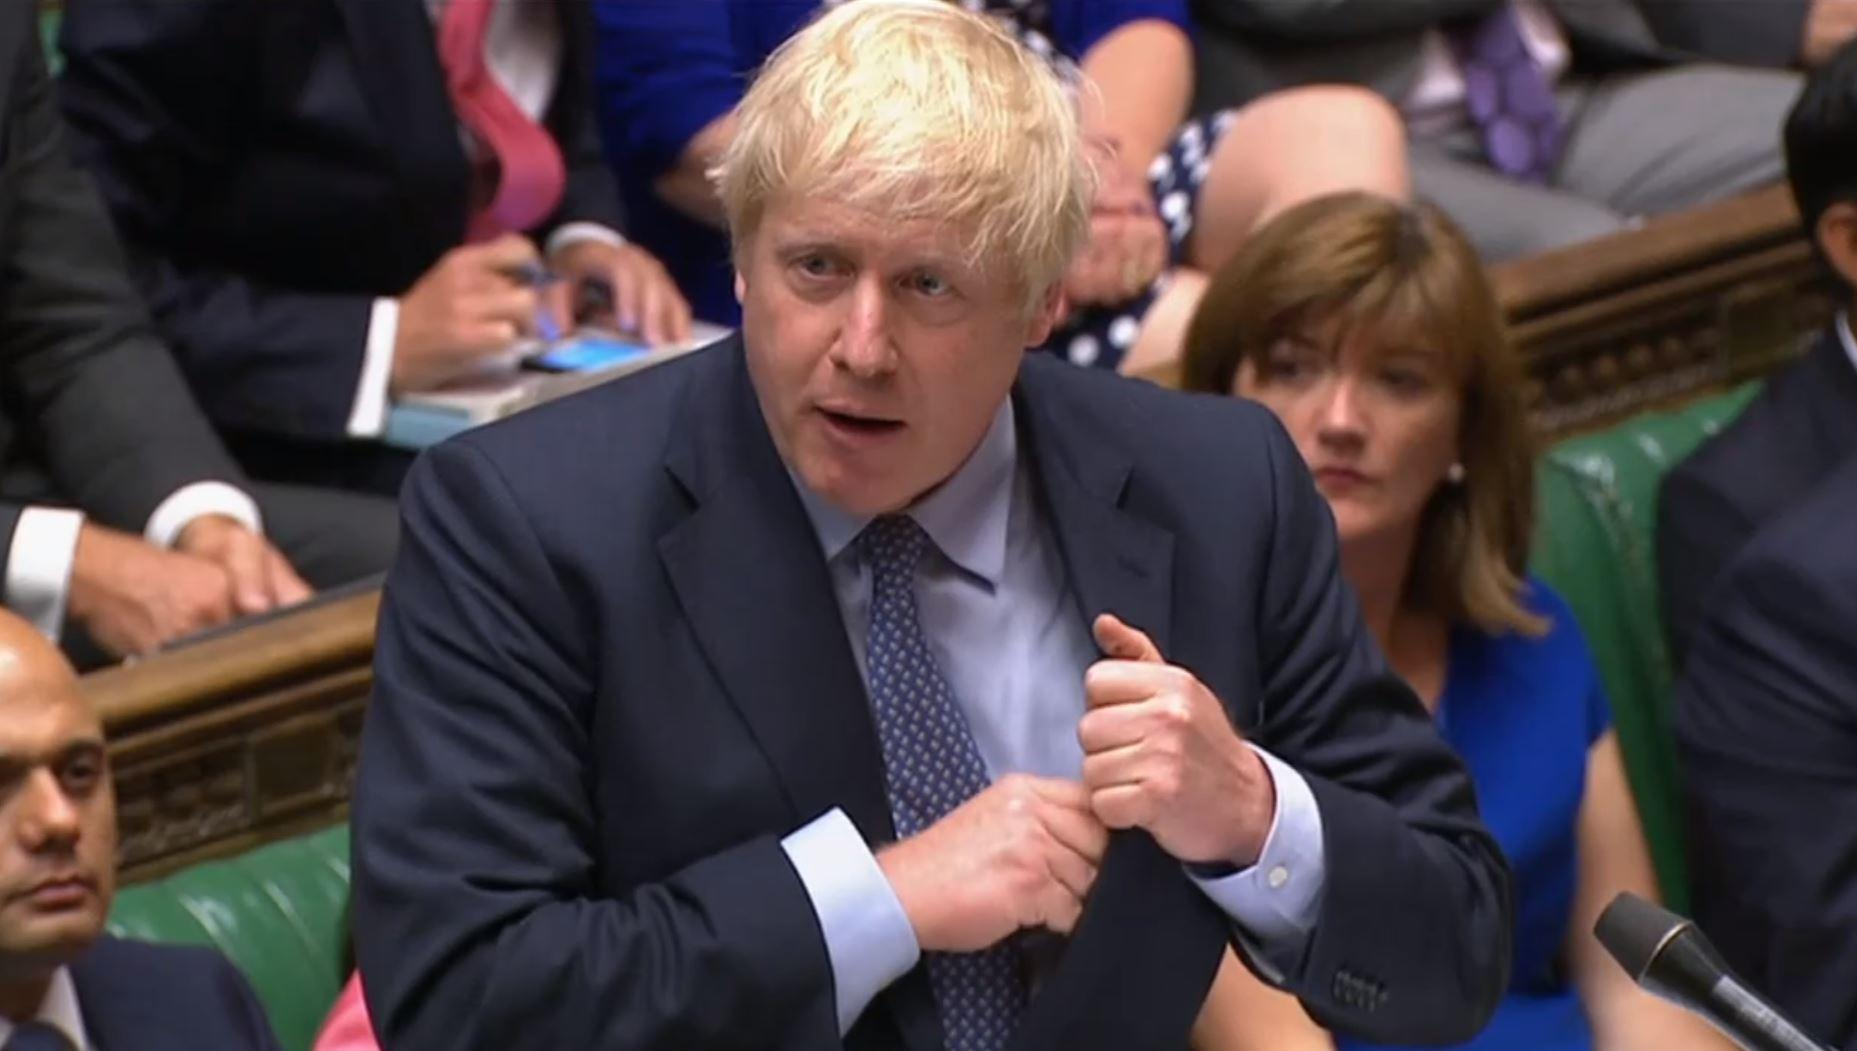 Prime Minister Boris Johnson speaks during Prime Minister's Questions